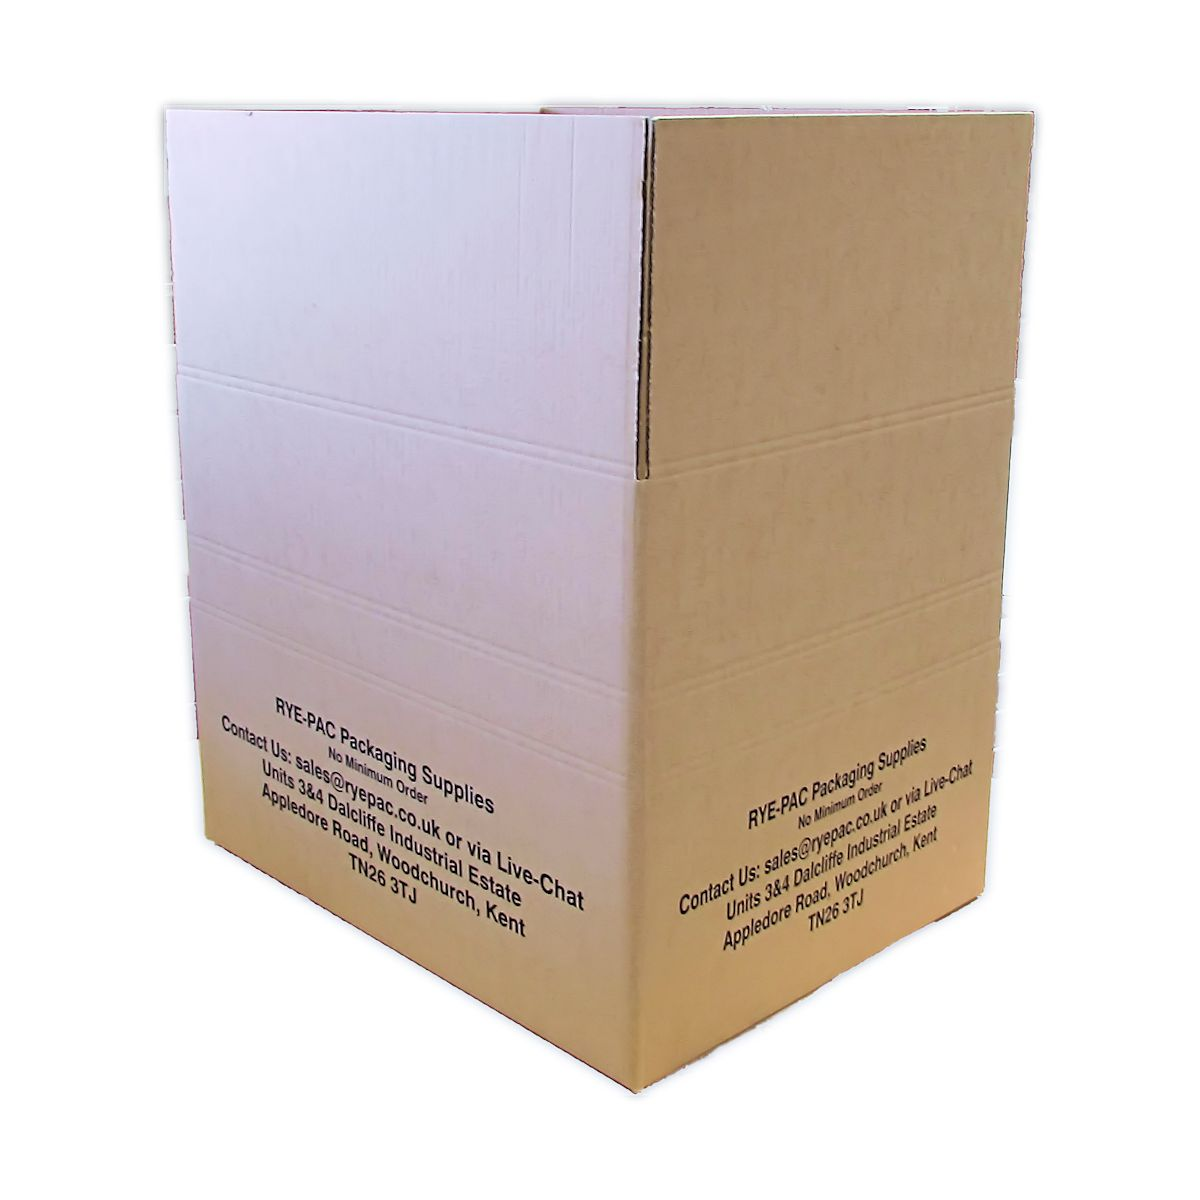 DWBOX241818 - 24 x 18 x 18 Double Wall Box (1 Single)